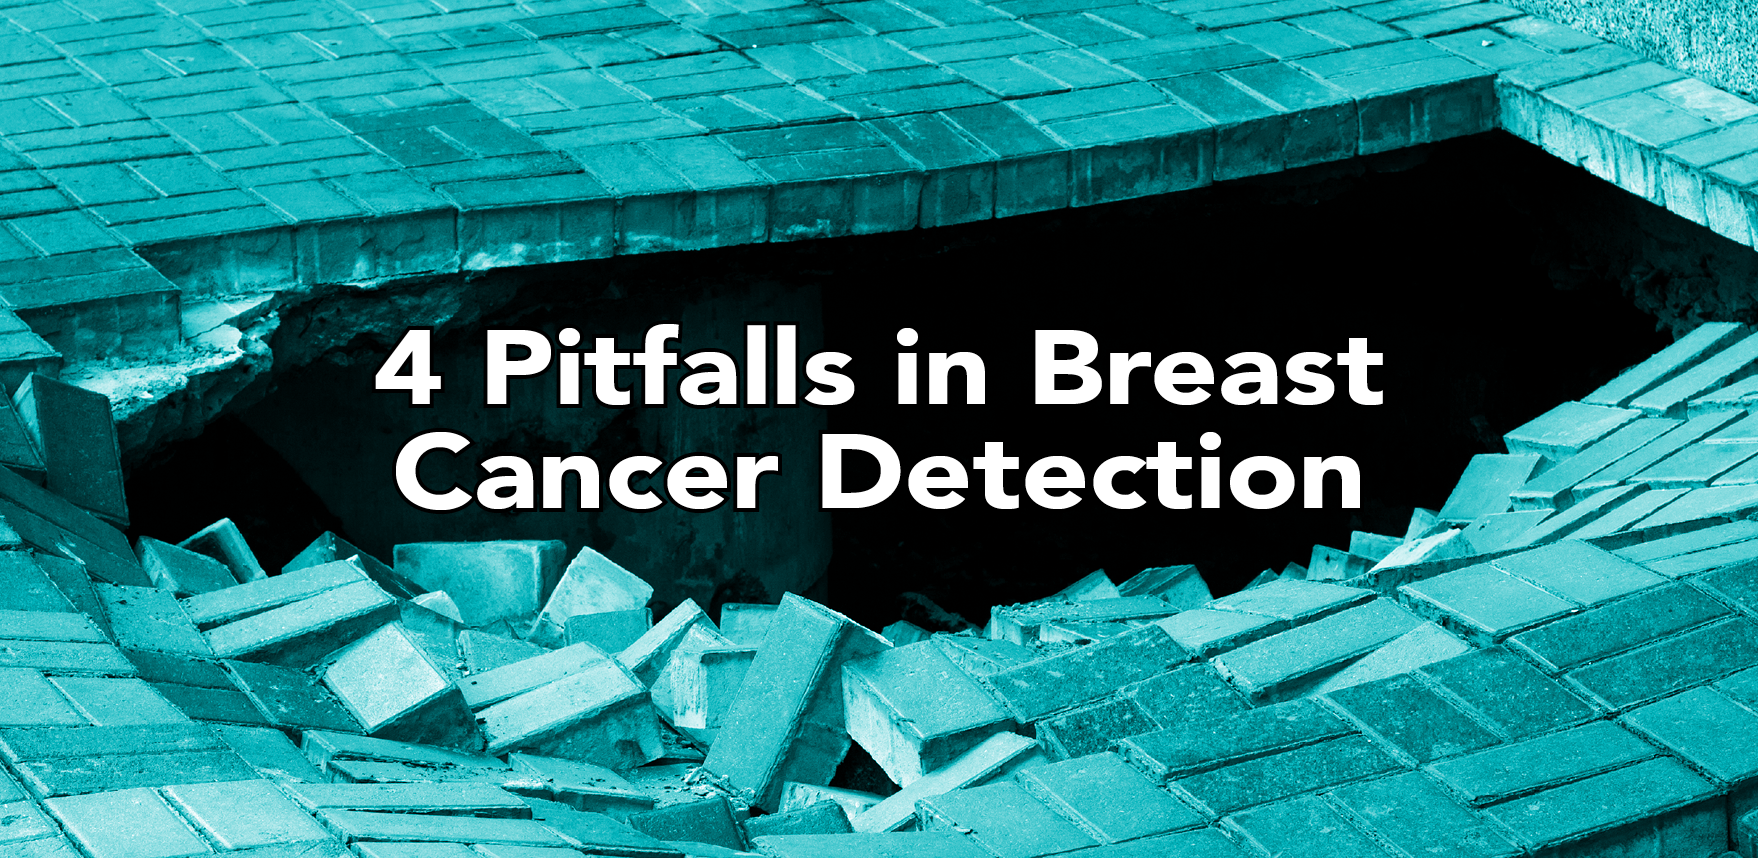 Pitfalls-in-breast-cancer-detection.png